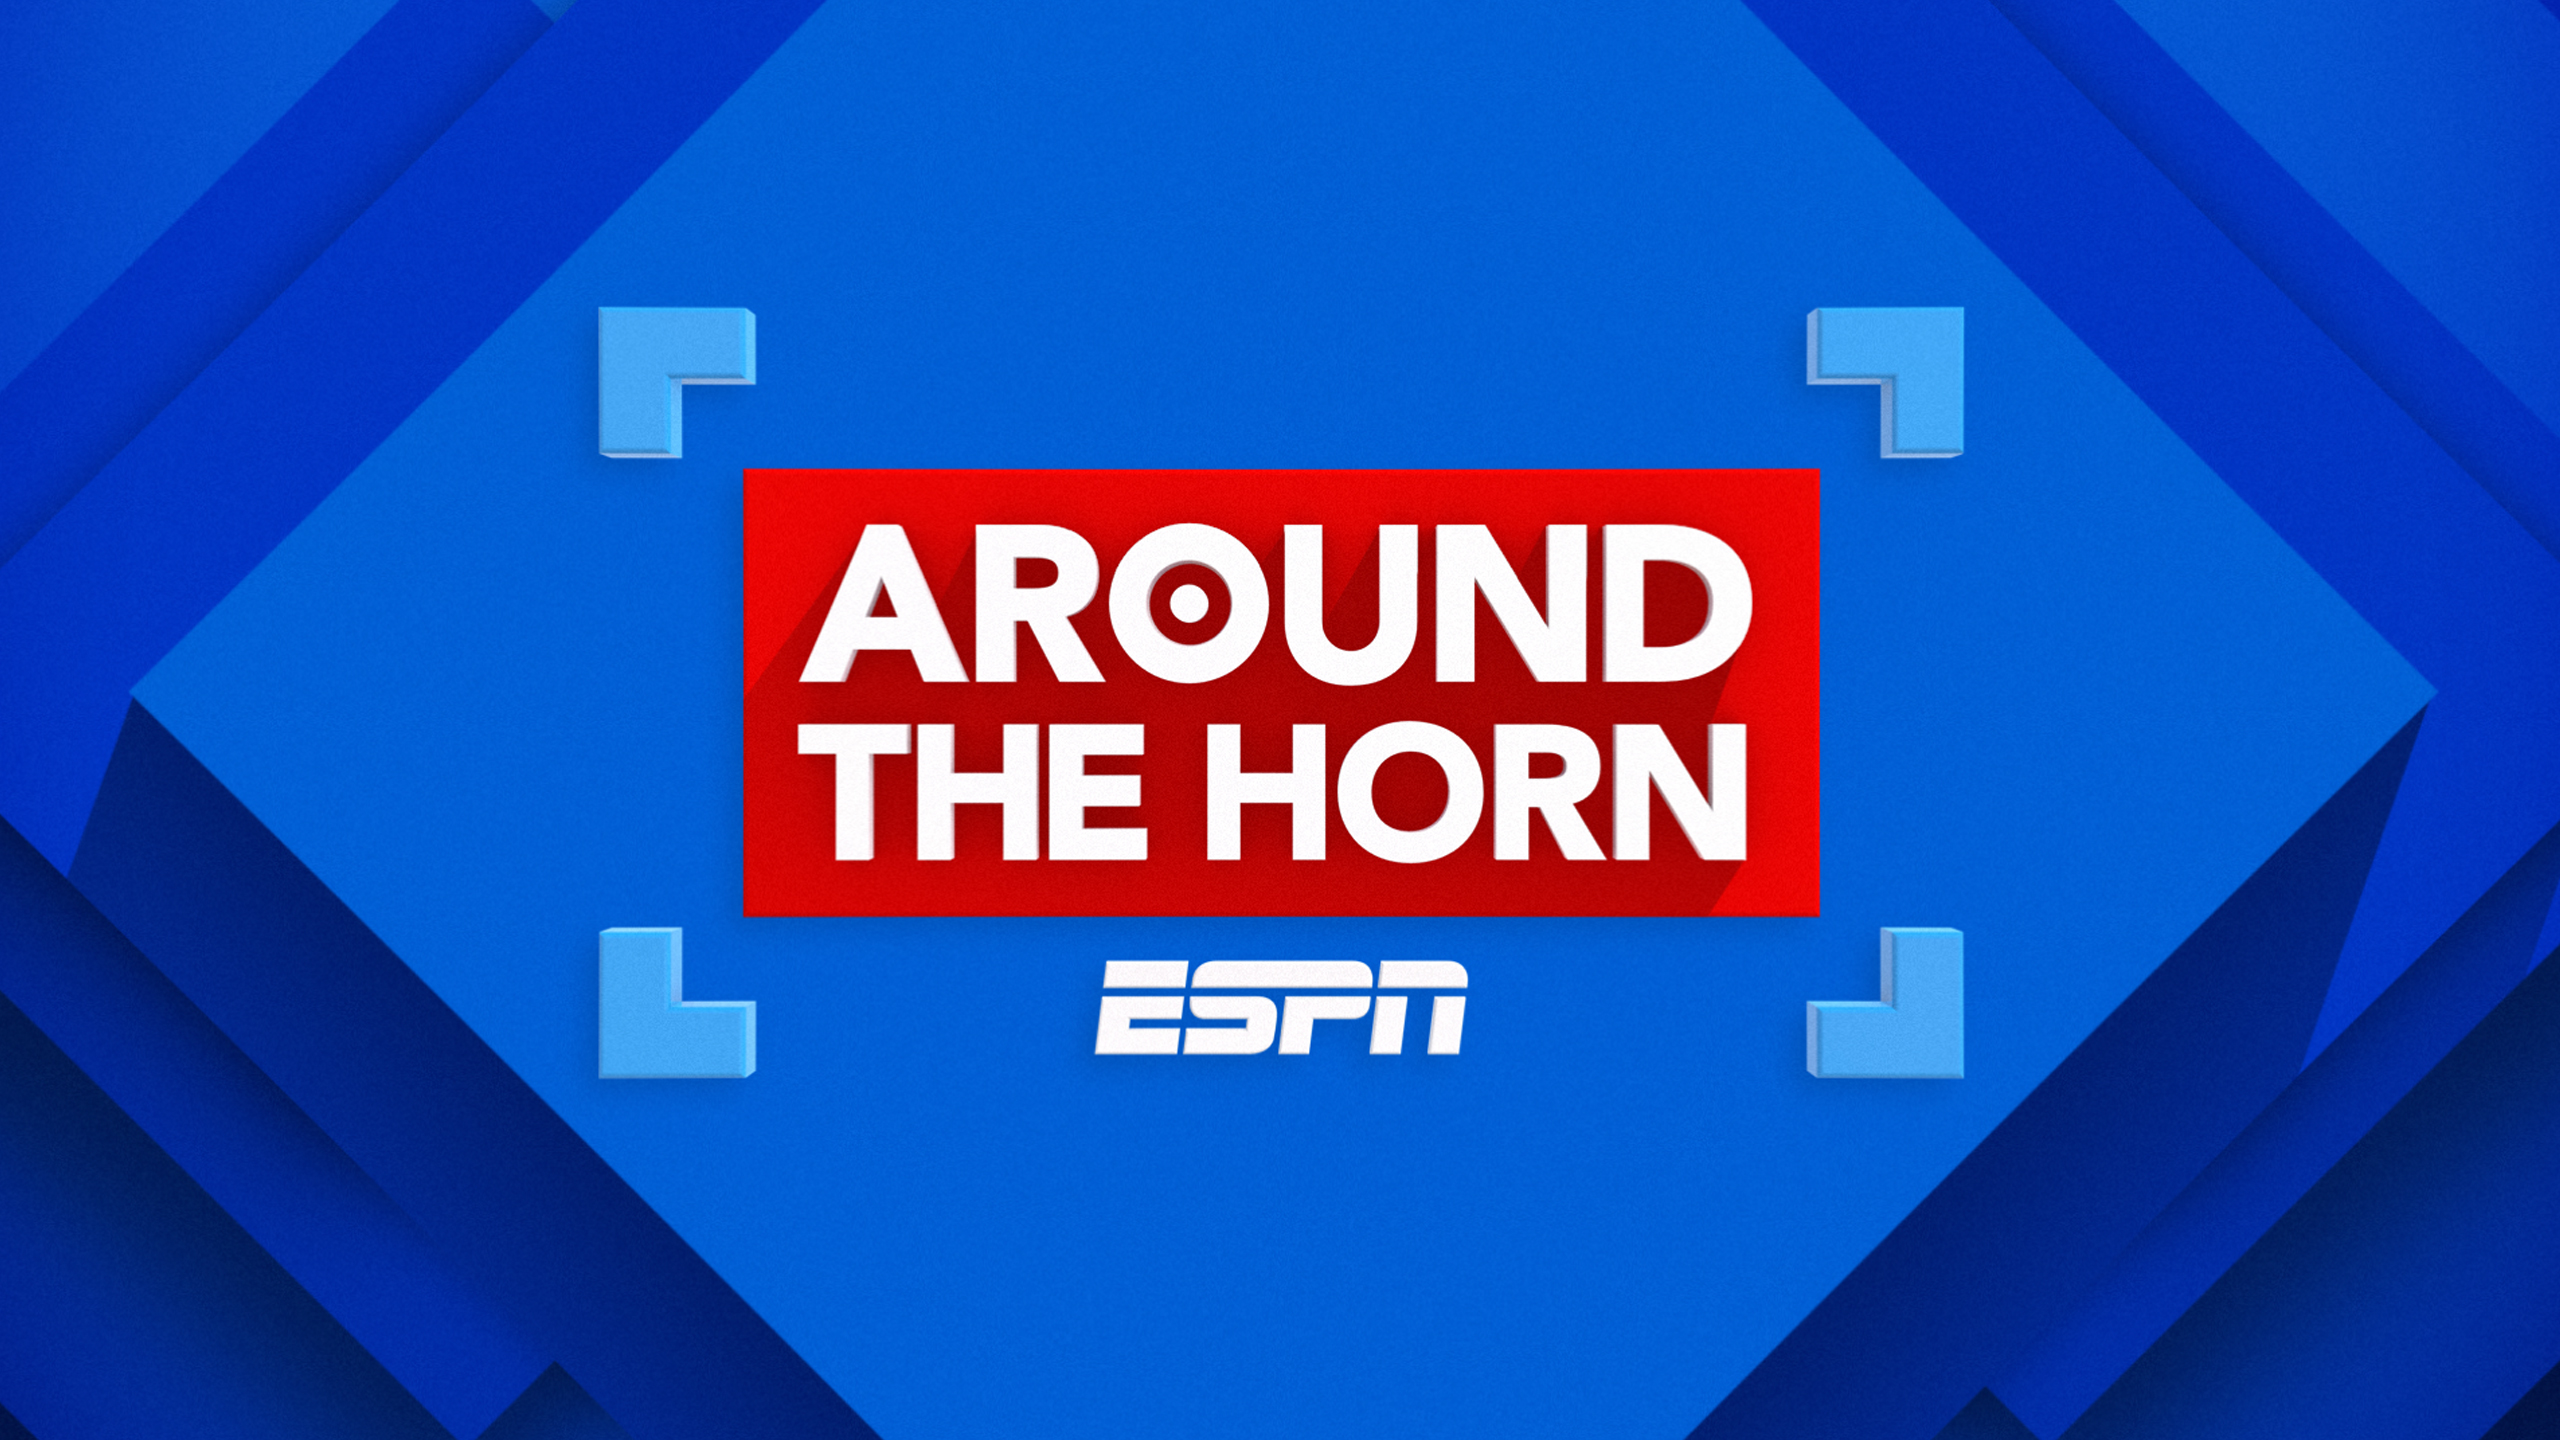 Fri, 1/18 - Around The Horn